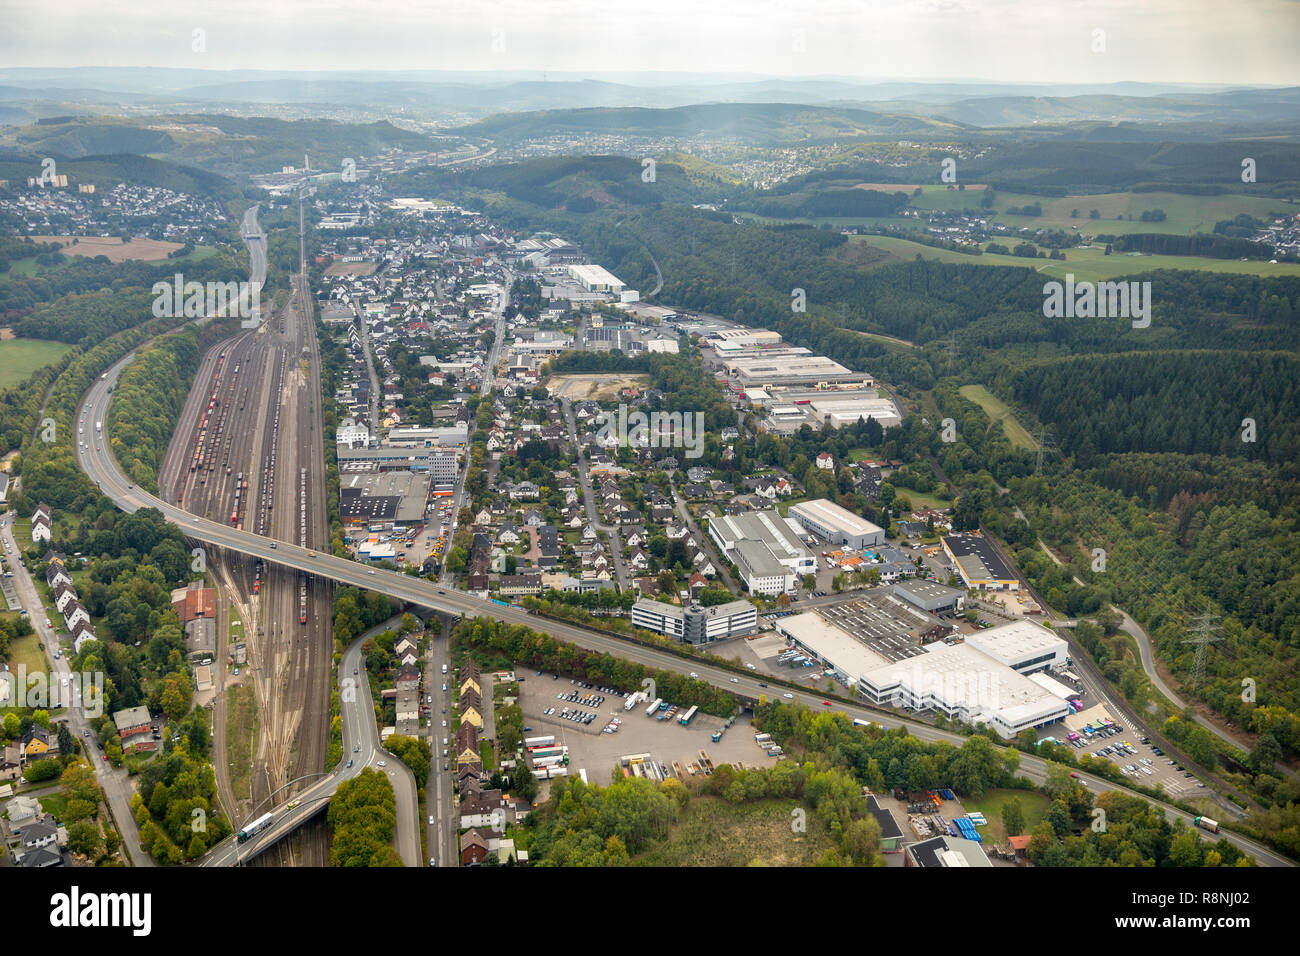 Aerial view, Kreuztal station, Kreis Siegen-Wittgenstein, North Rhine-Westphalia, Germany, Europe, Kreuztal, DEU, birds-eyes view, aerial view, aerial - Stock Image